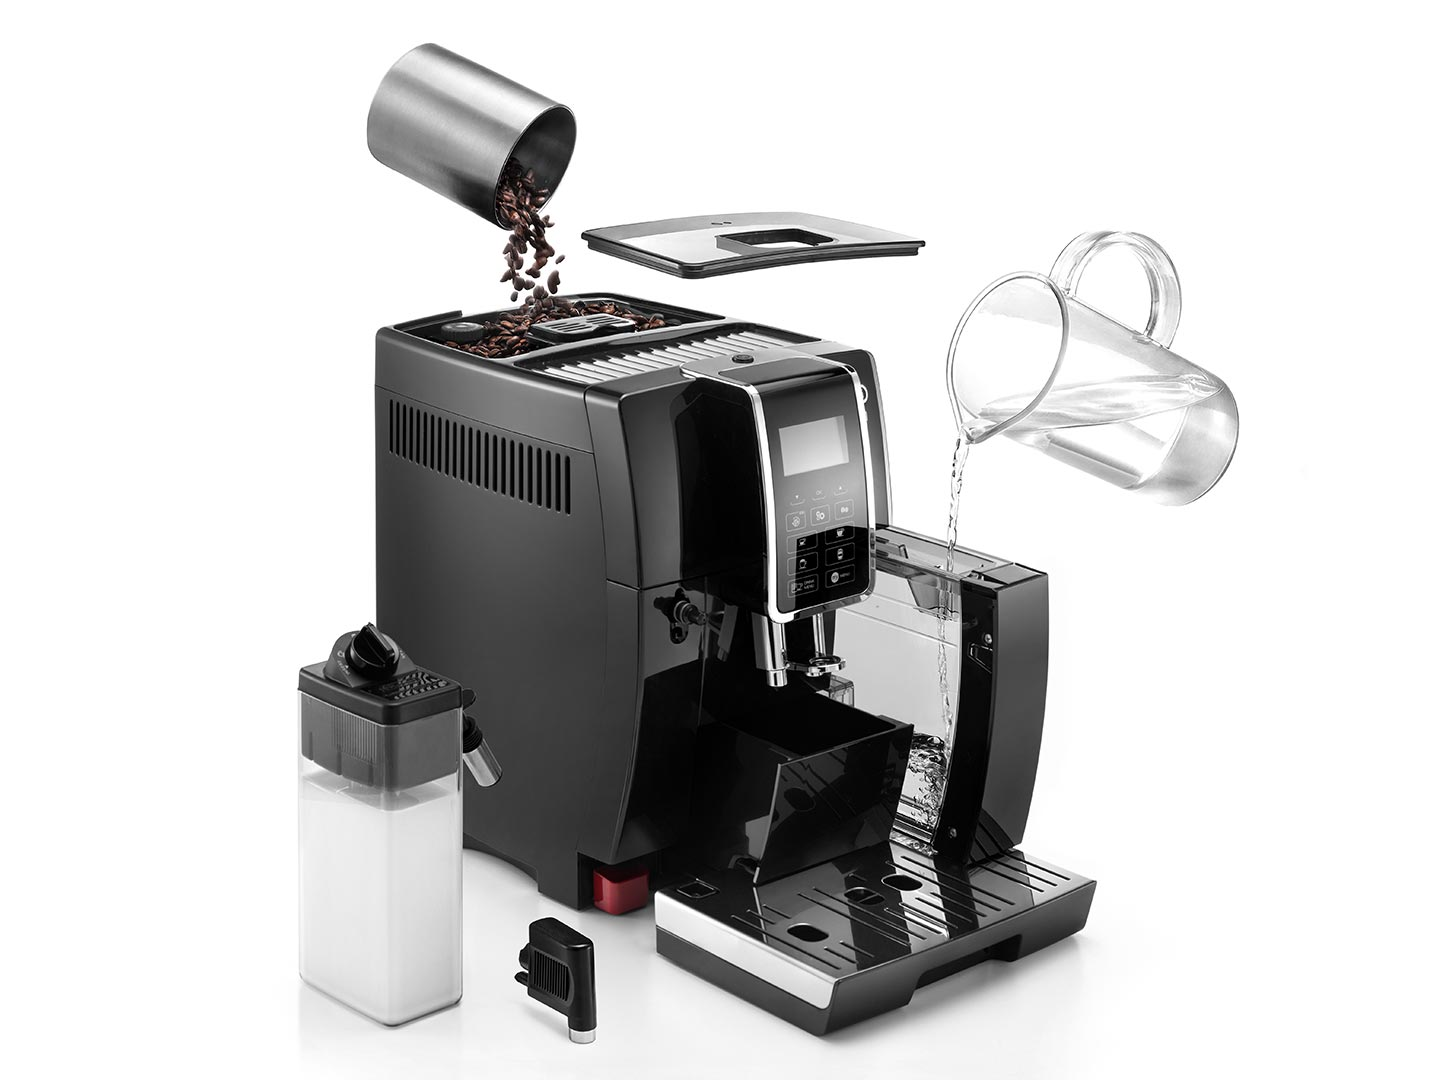 in this picture Dinamica ECAM 35055B Fully Automatic Coffee Machine makes coffee from freshly ground beans